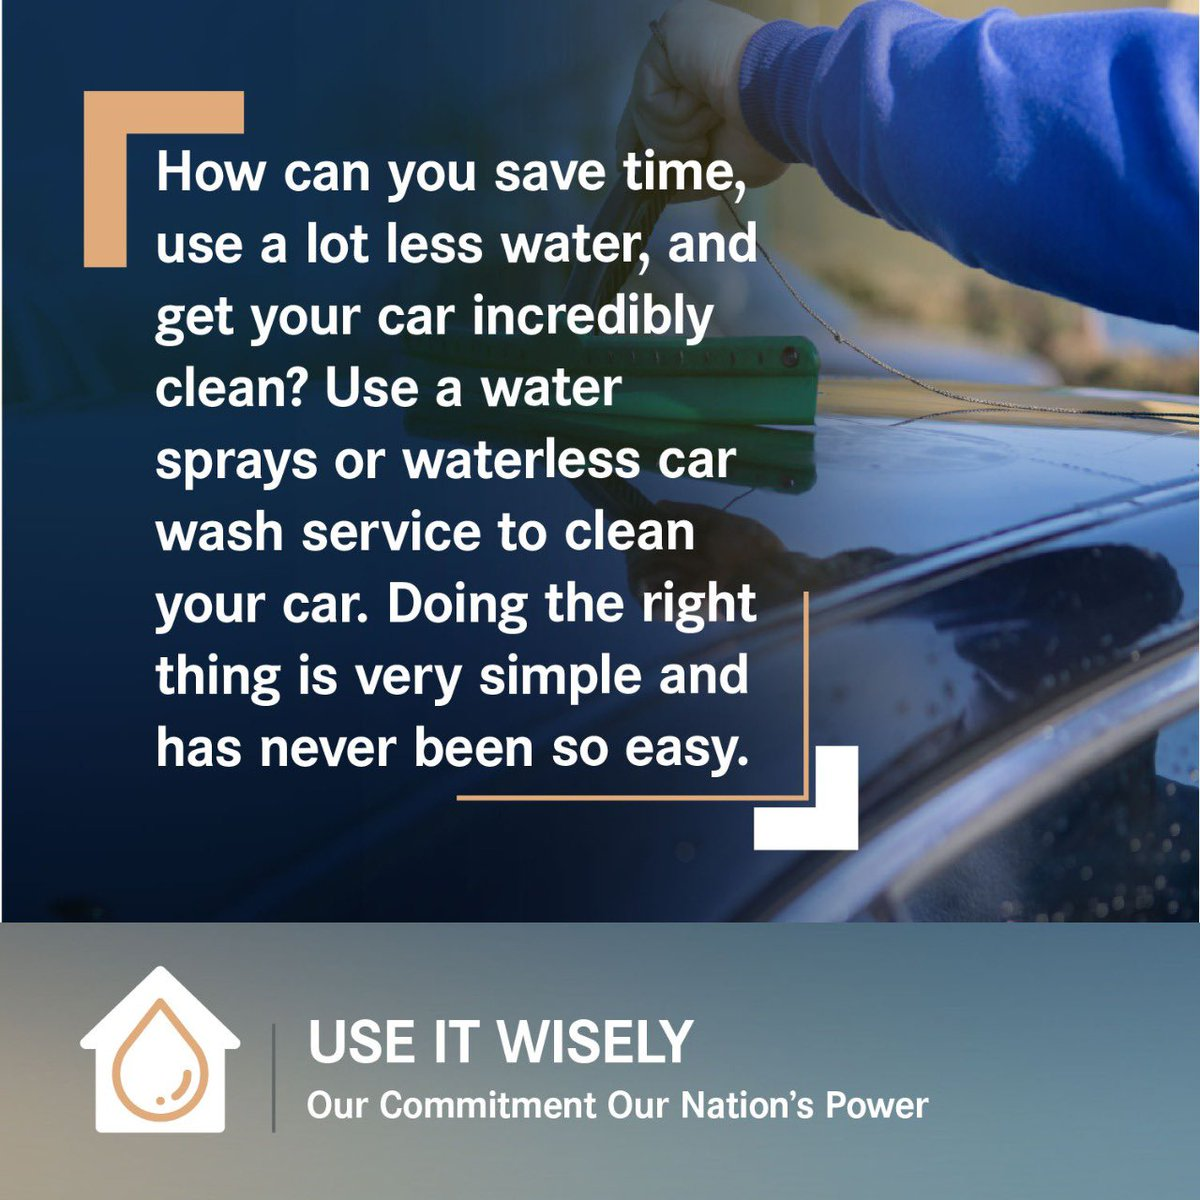 How can you save time, use a lot less water, and get your car incredibly clean? Use a water sprays or waterless car wash service to clean your car. Doing the right thing is very simple and has never been so easy. #UseItWisely  #OurCommitment #OurNationsPower  #YouAreResponsible https://t.co/ujlctCgZx6